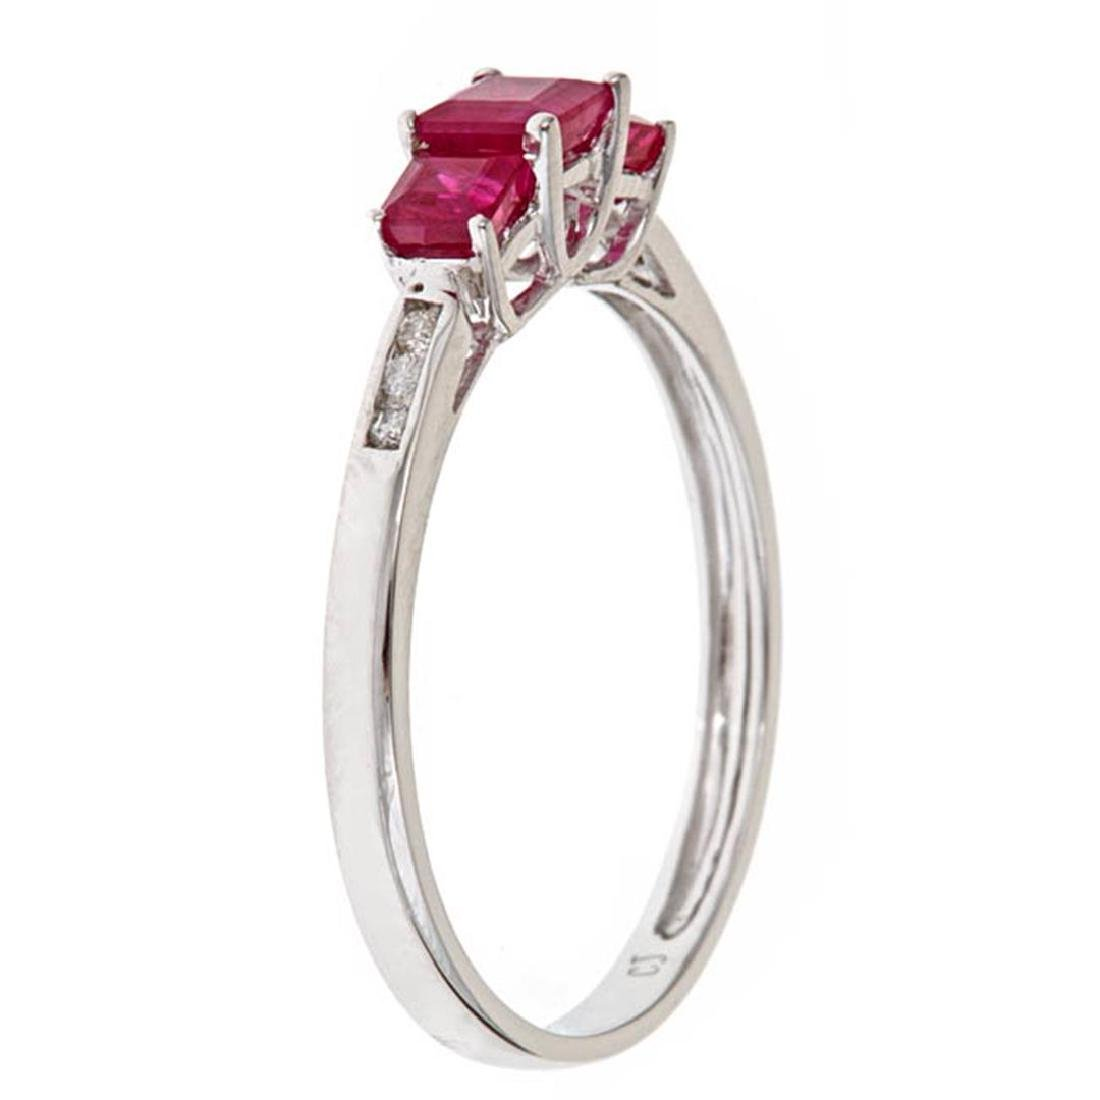 0.75 ctw Ruby and Diamond Ring - 14KT White Gold - 2